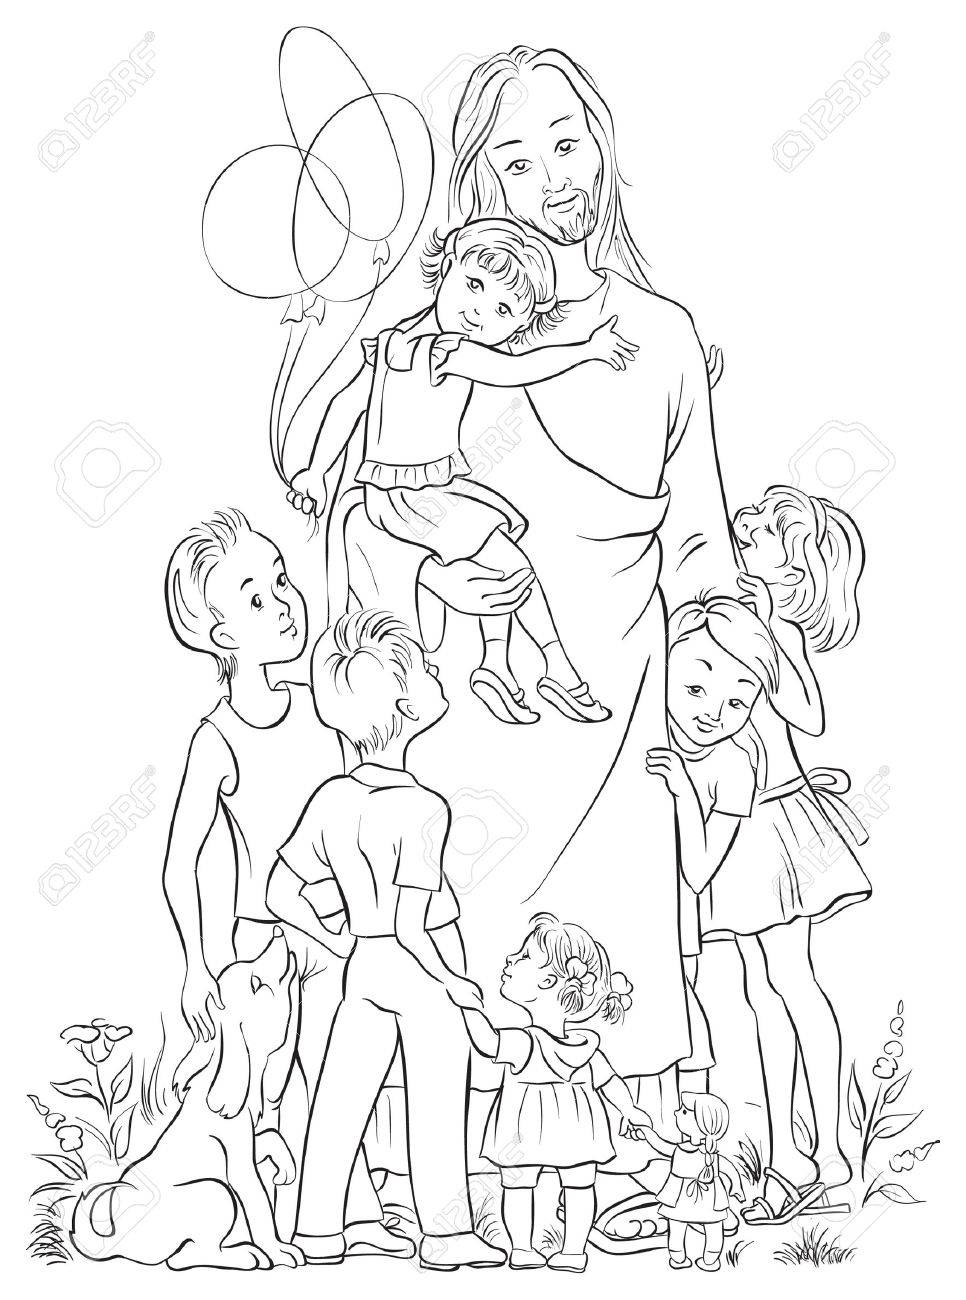 Jesus with children outlined - 33302762